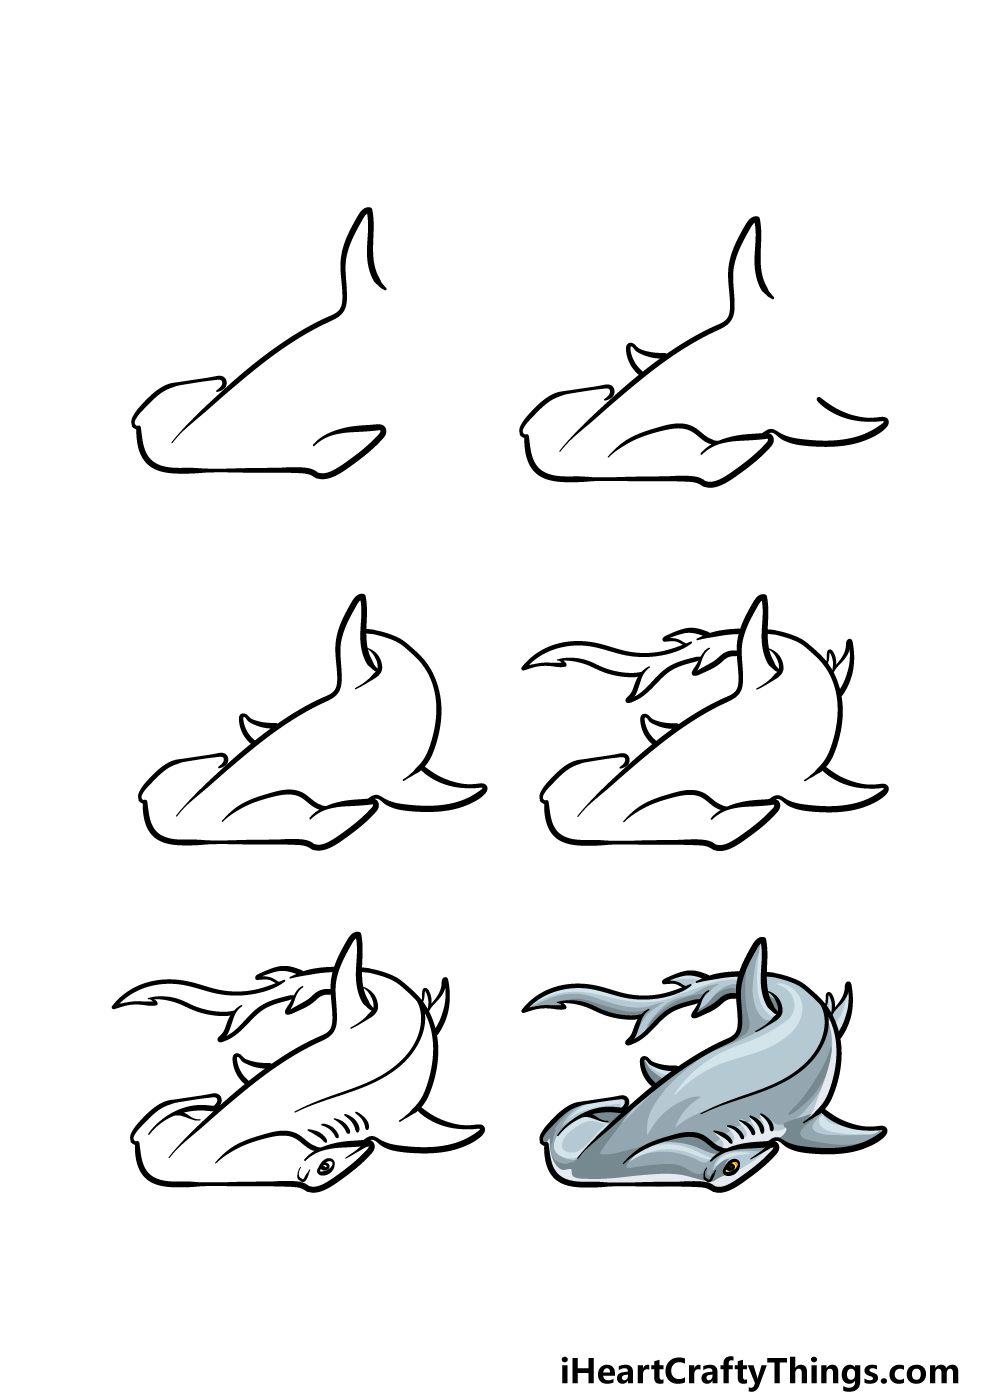 how to draw a hummerhead shark in 6 steps